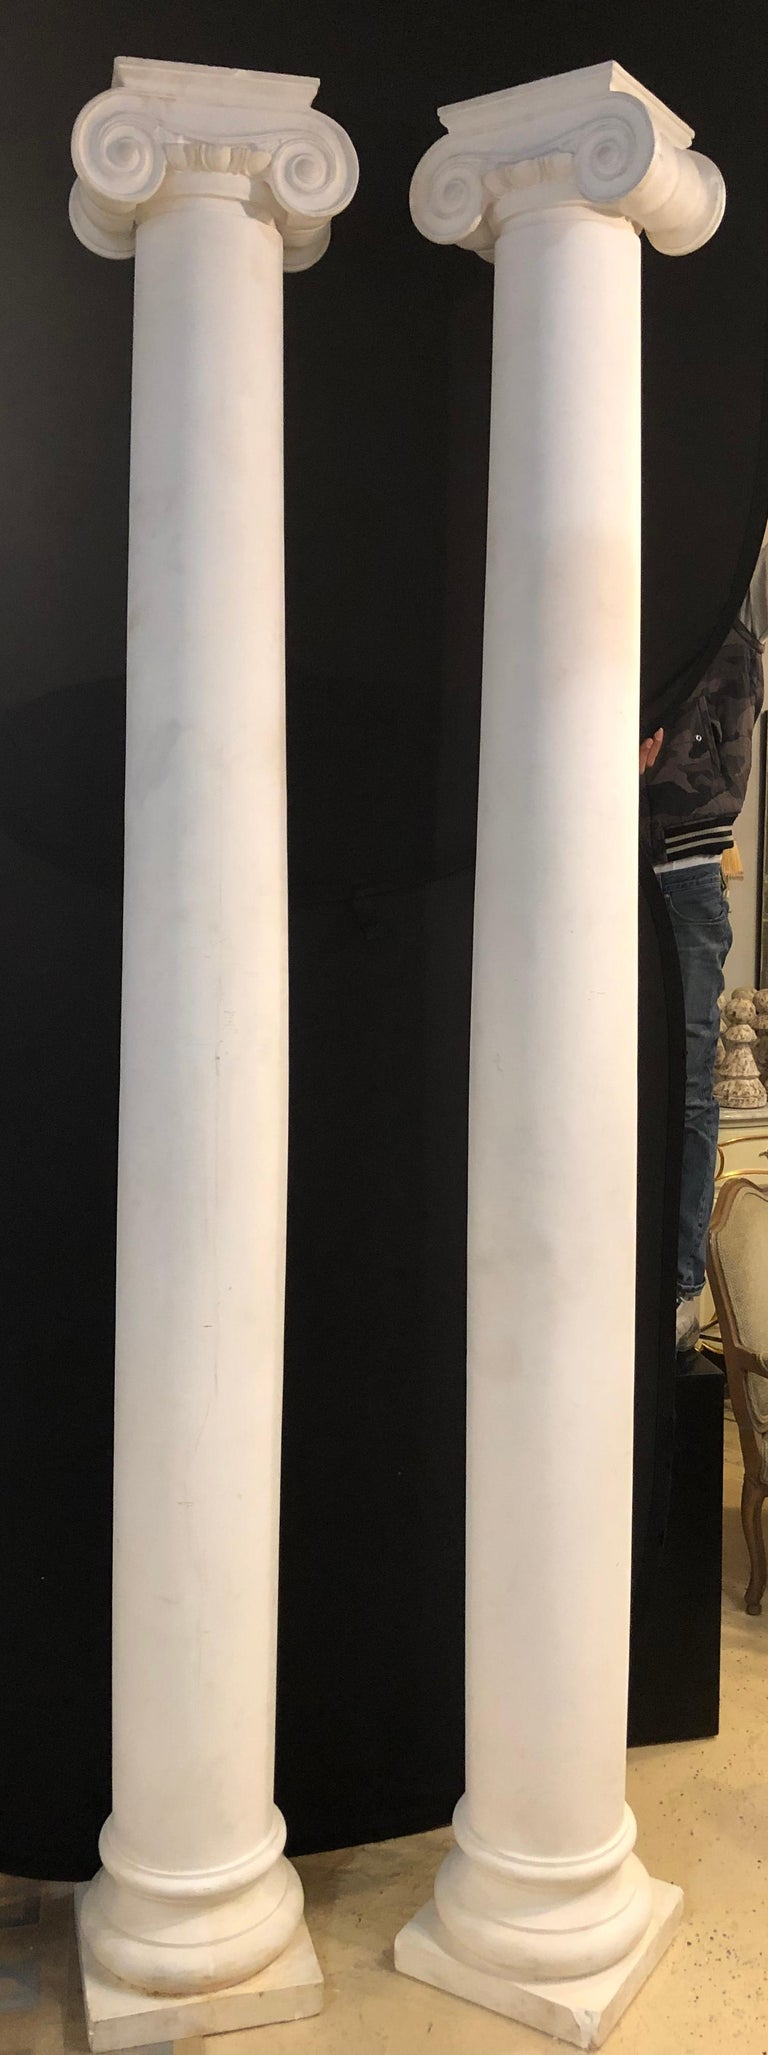 Pair of almost nine foot high columns having Corinthian carved capitals in an off white composite or fiberglass. Heavy and sturdy are these impressive and very large columns. They can go either inside or outside in the yard. Some minor chips or